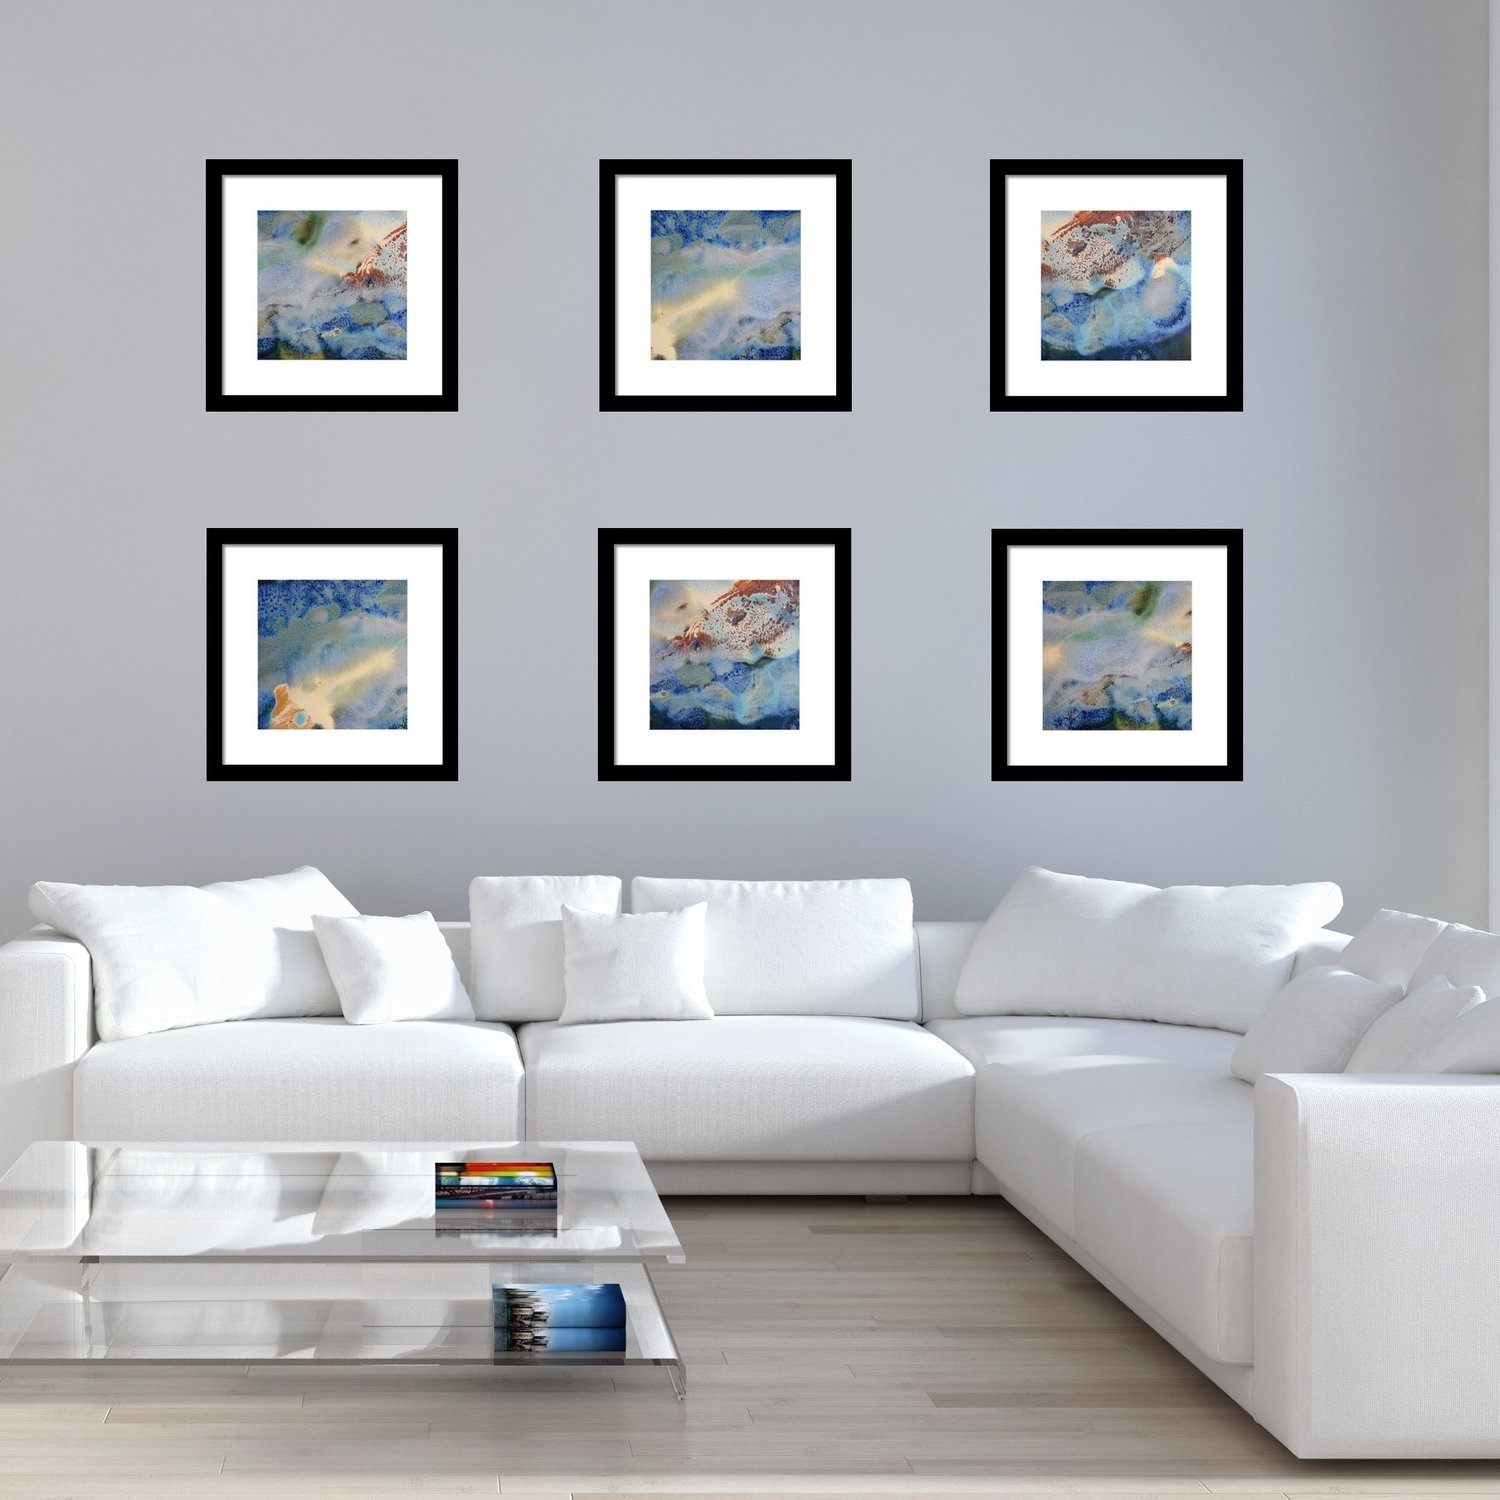 Set Of 6 Abstract Framed Prints – Square #17, 18 & 19 | White With Regard To 2017 Framed Beach Art Prints (View 13 of 15)